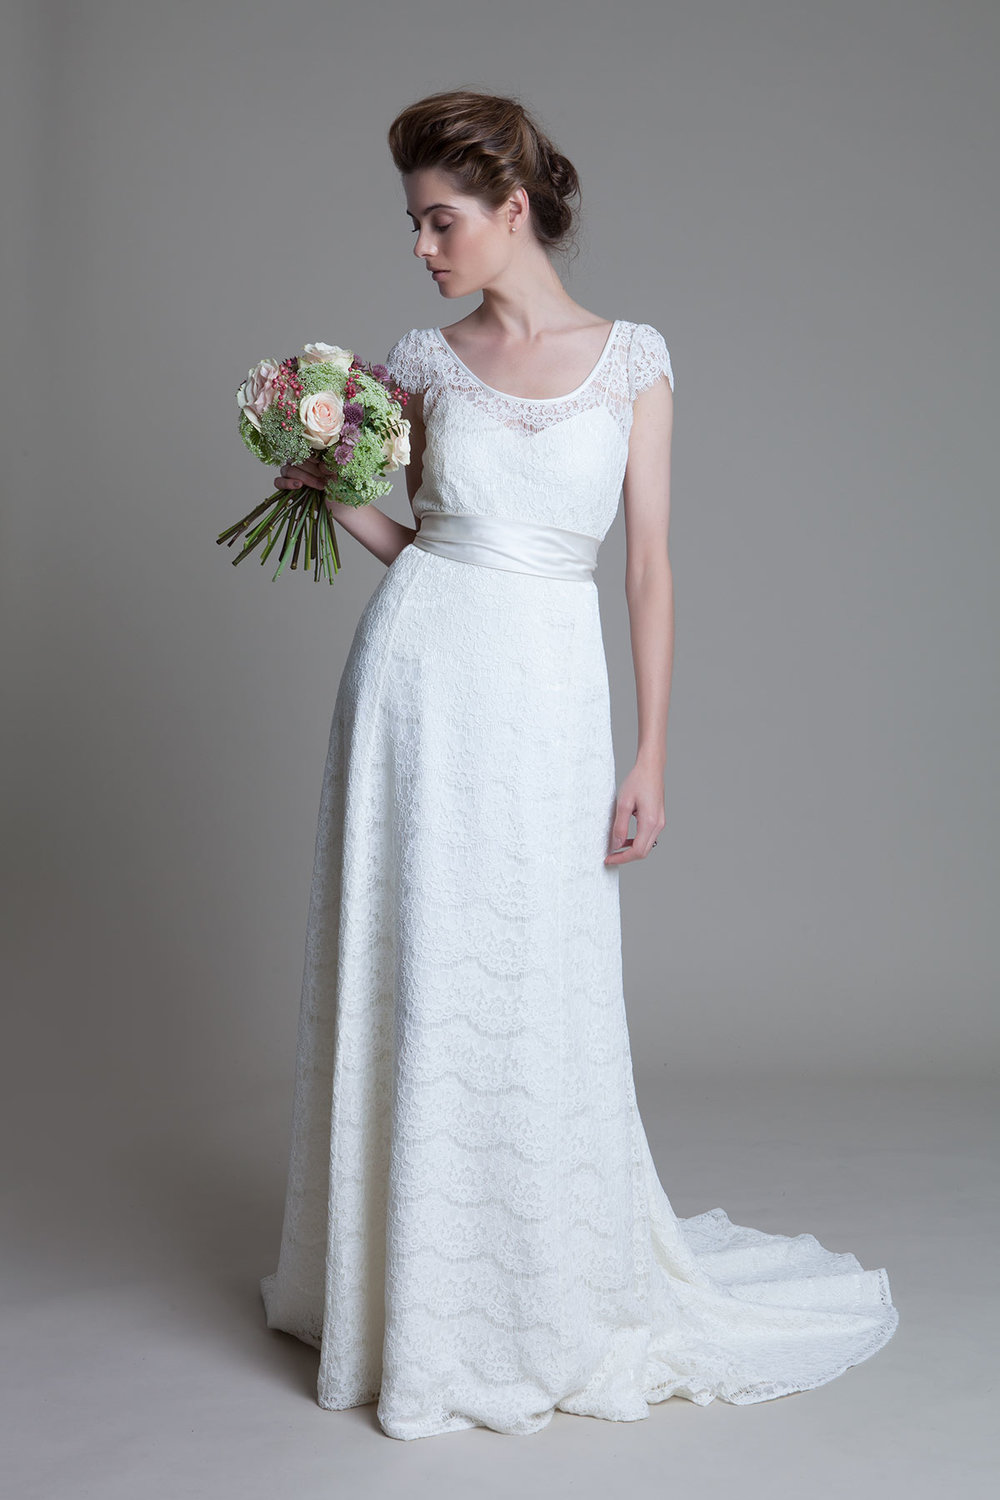 Bella round neck french lace and duchess satin sash bridal wedding dress by Halfpenny London